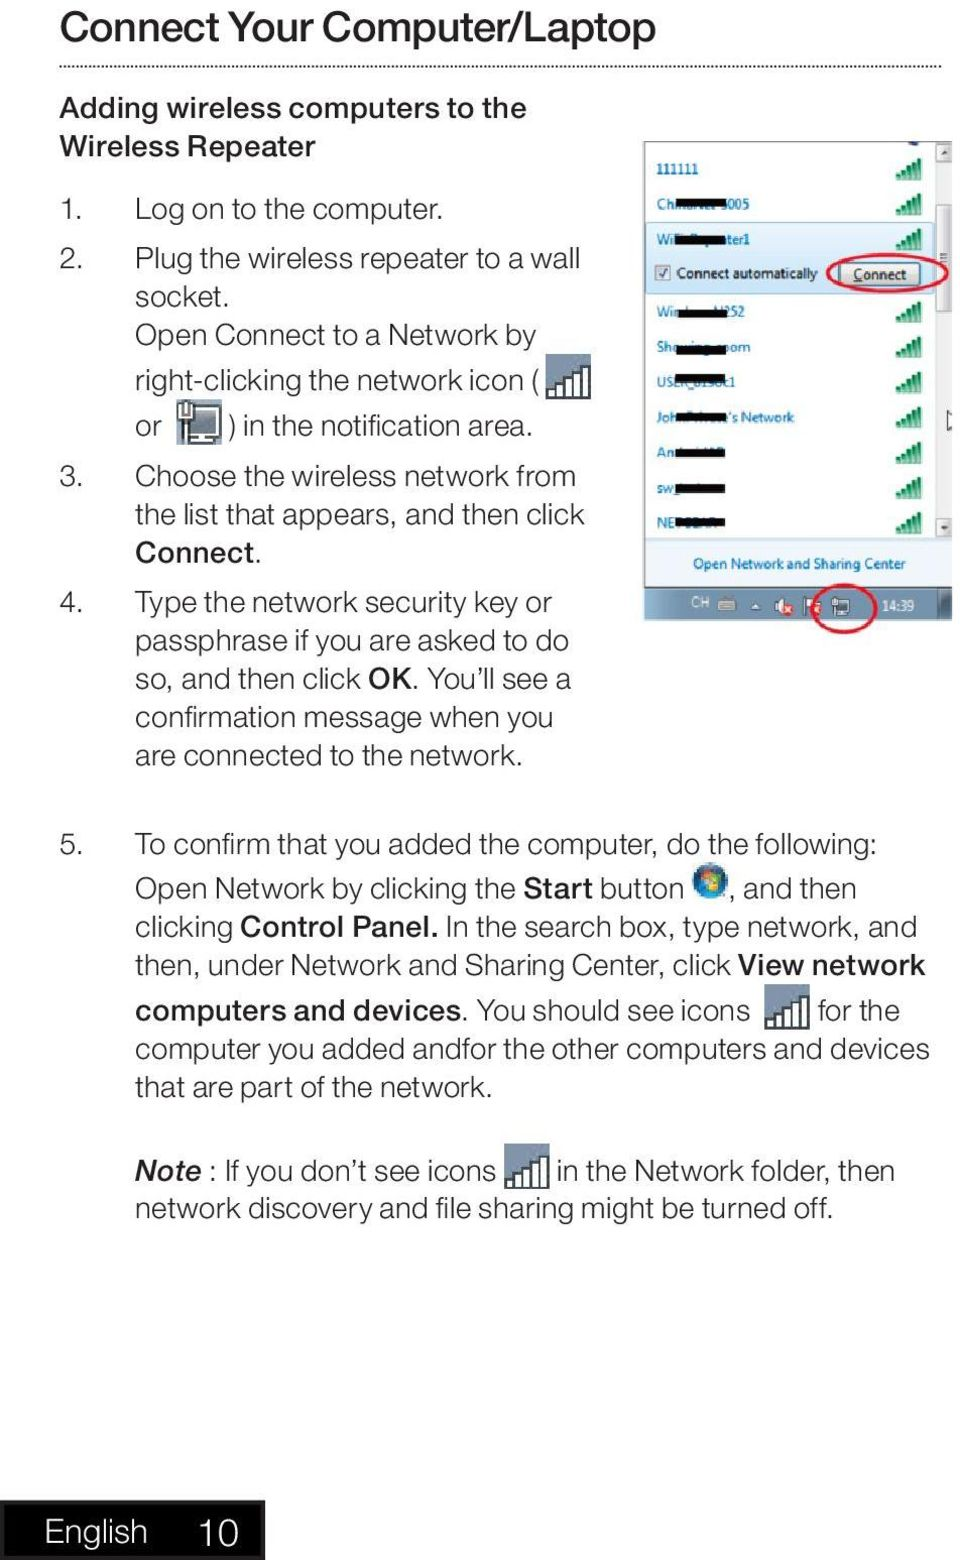 Type the network security key or passphrase if you are asked to do so, and then click OK. You ll see a confirmation message when you are connected to the network. 5.